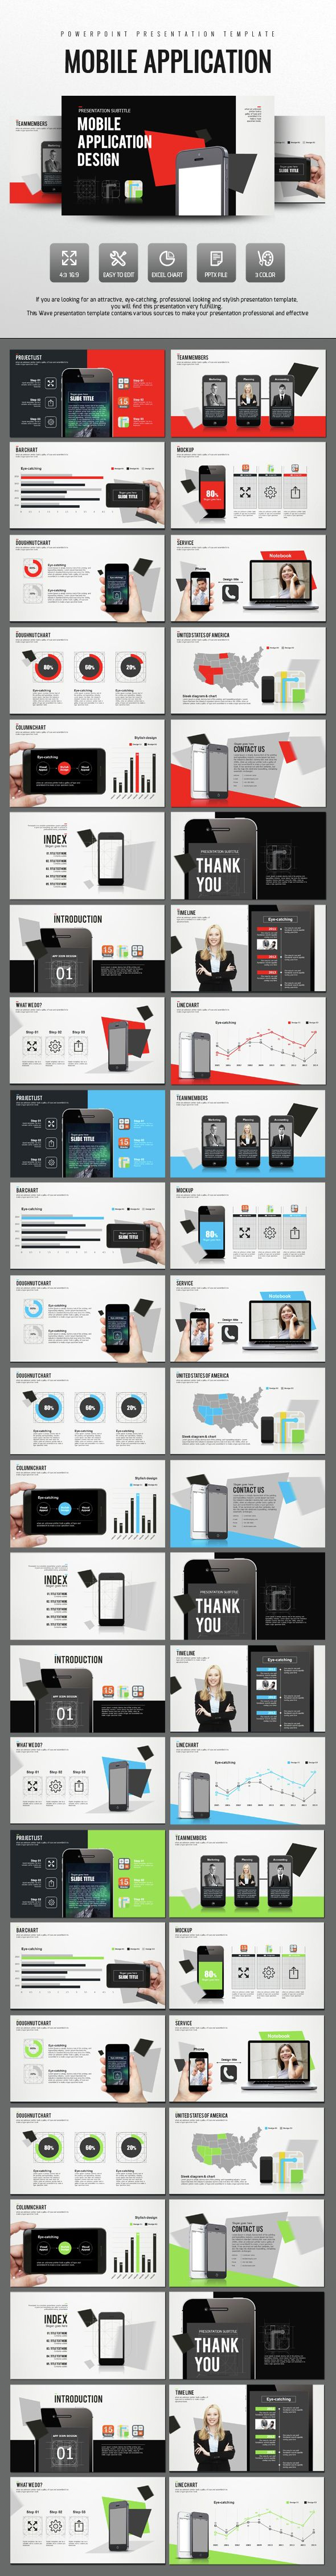 Mobile application design powerpoint powerpoint templates mobile mobile application design powerpoint powerpoint templates toneelgroepblik Gallery